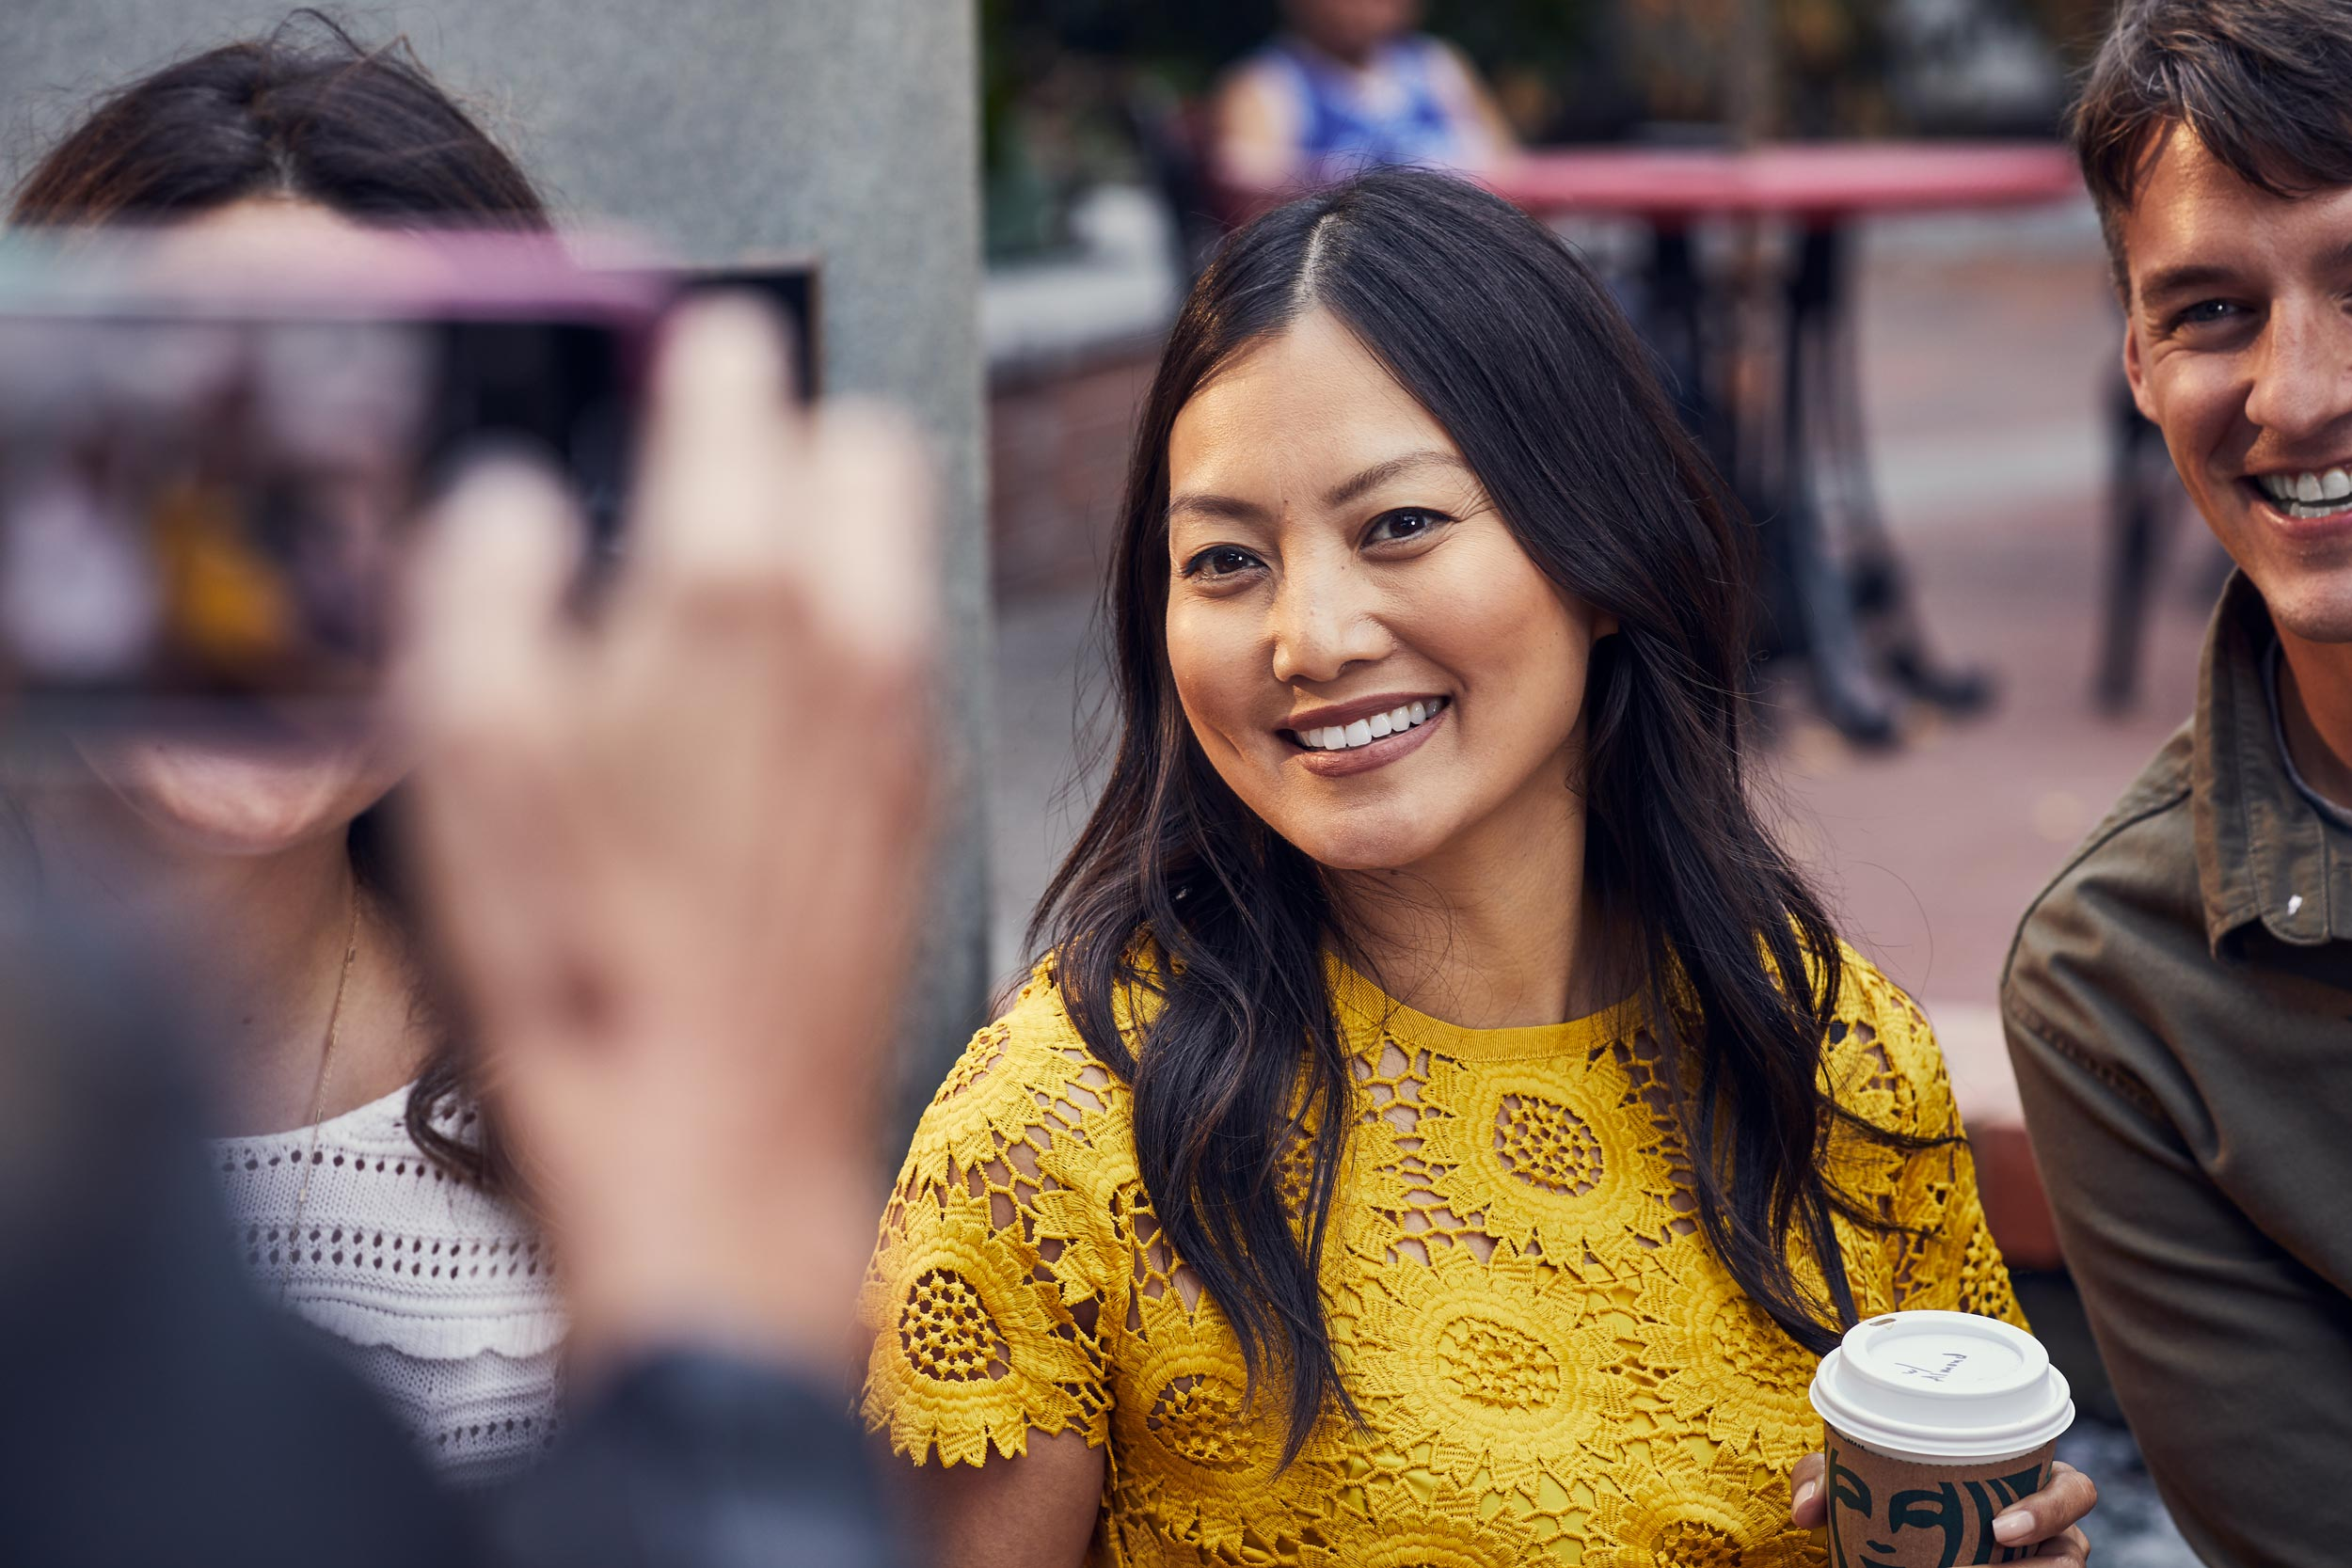 woman in yellow dress and friends smile for smartphone photo, washington dc commercial photography